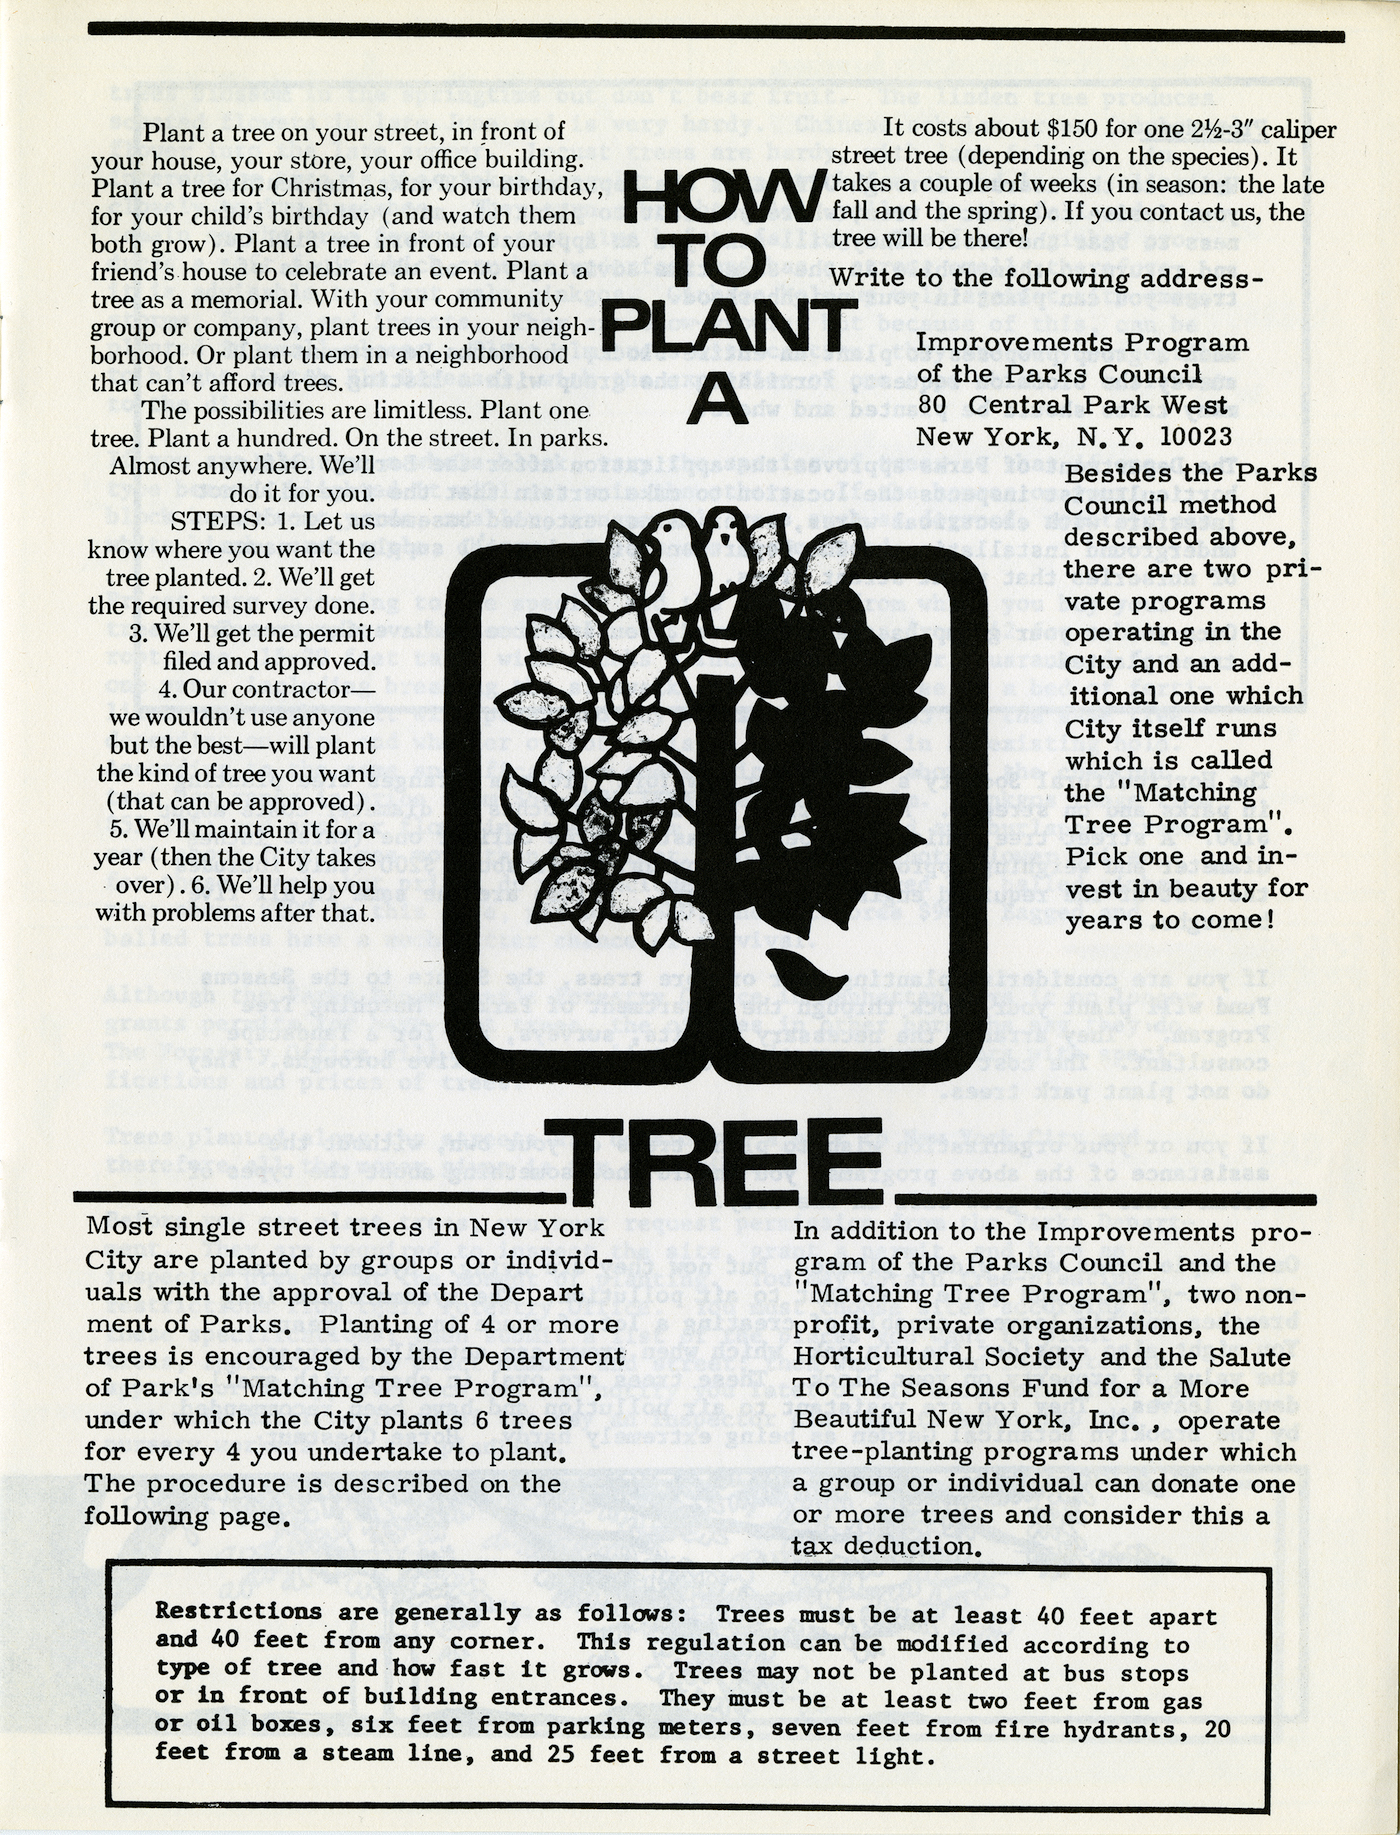 How to Plant A Tree (1970s) (Ronald Shiffman collection on the Pratt Center for Community Development, 2013.023, Box 70, Folder 23; Brooklyn Historical Society)